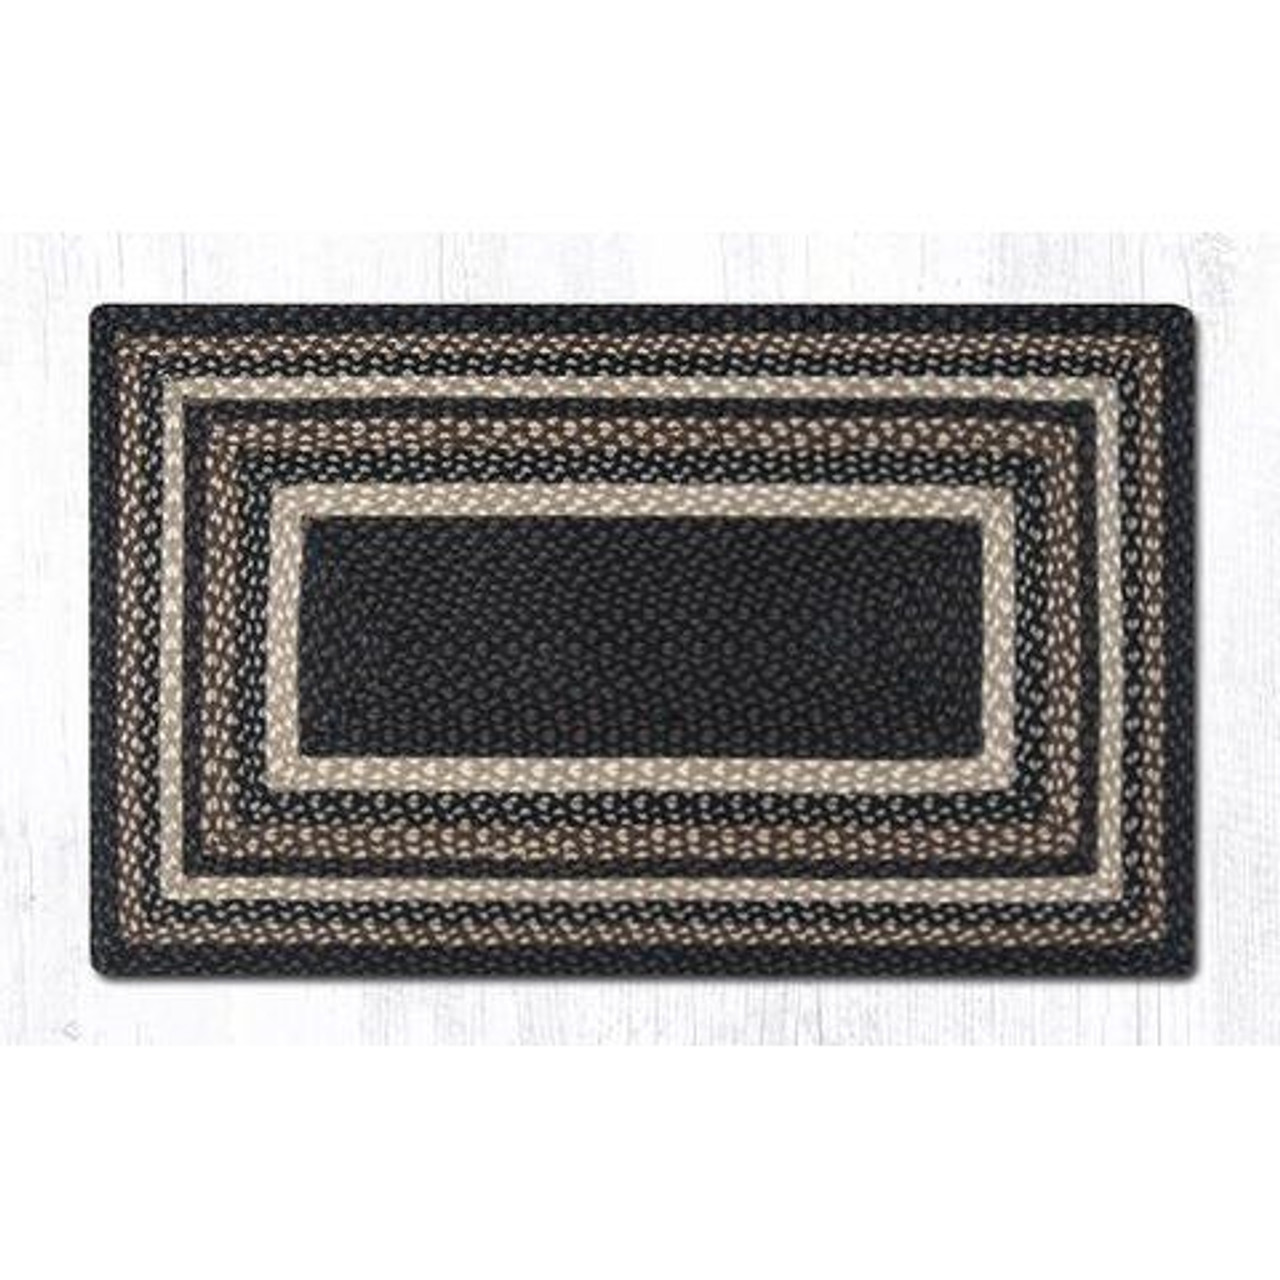 2' x 8' Rectangle Rugs